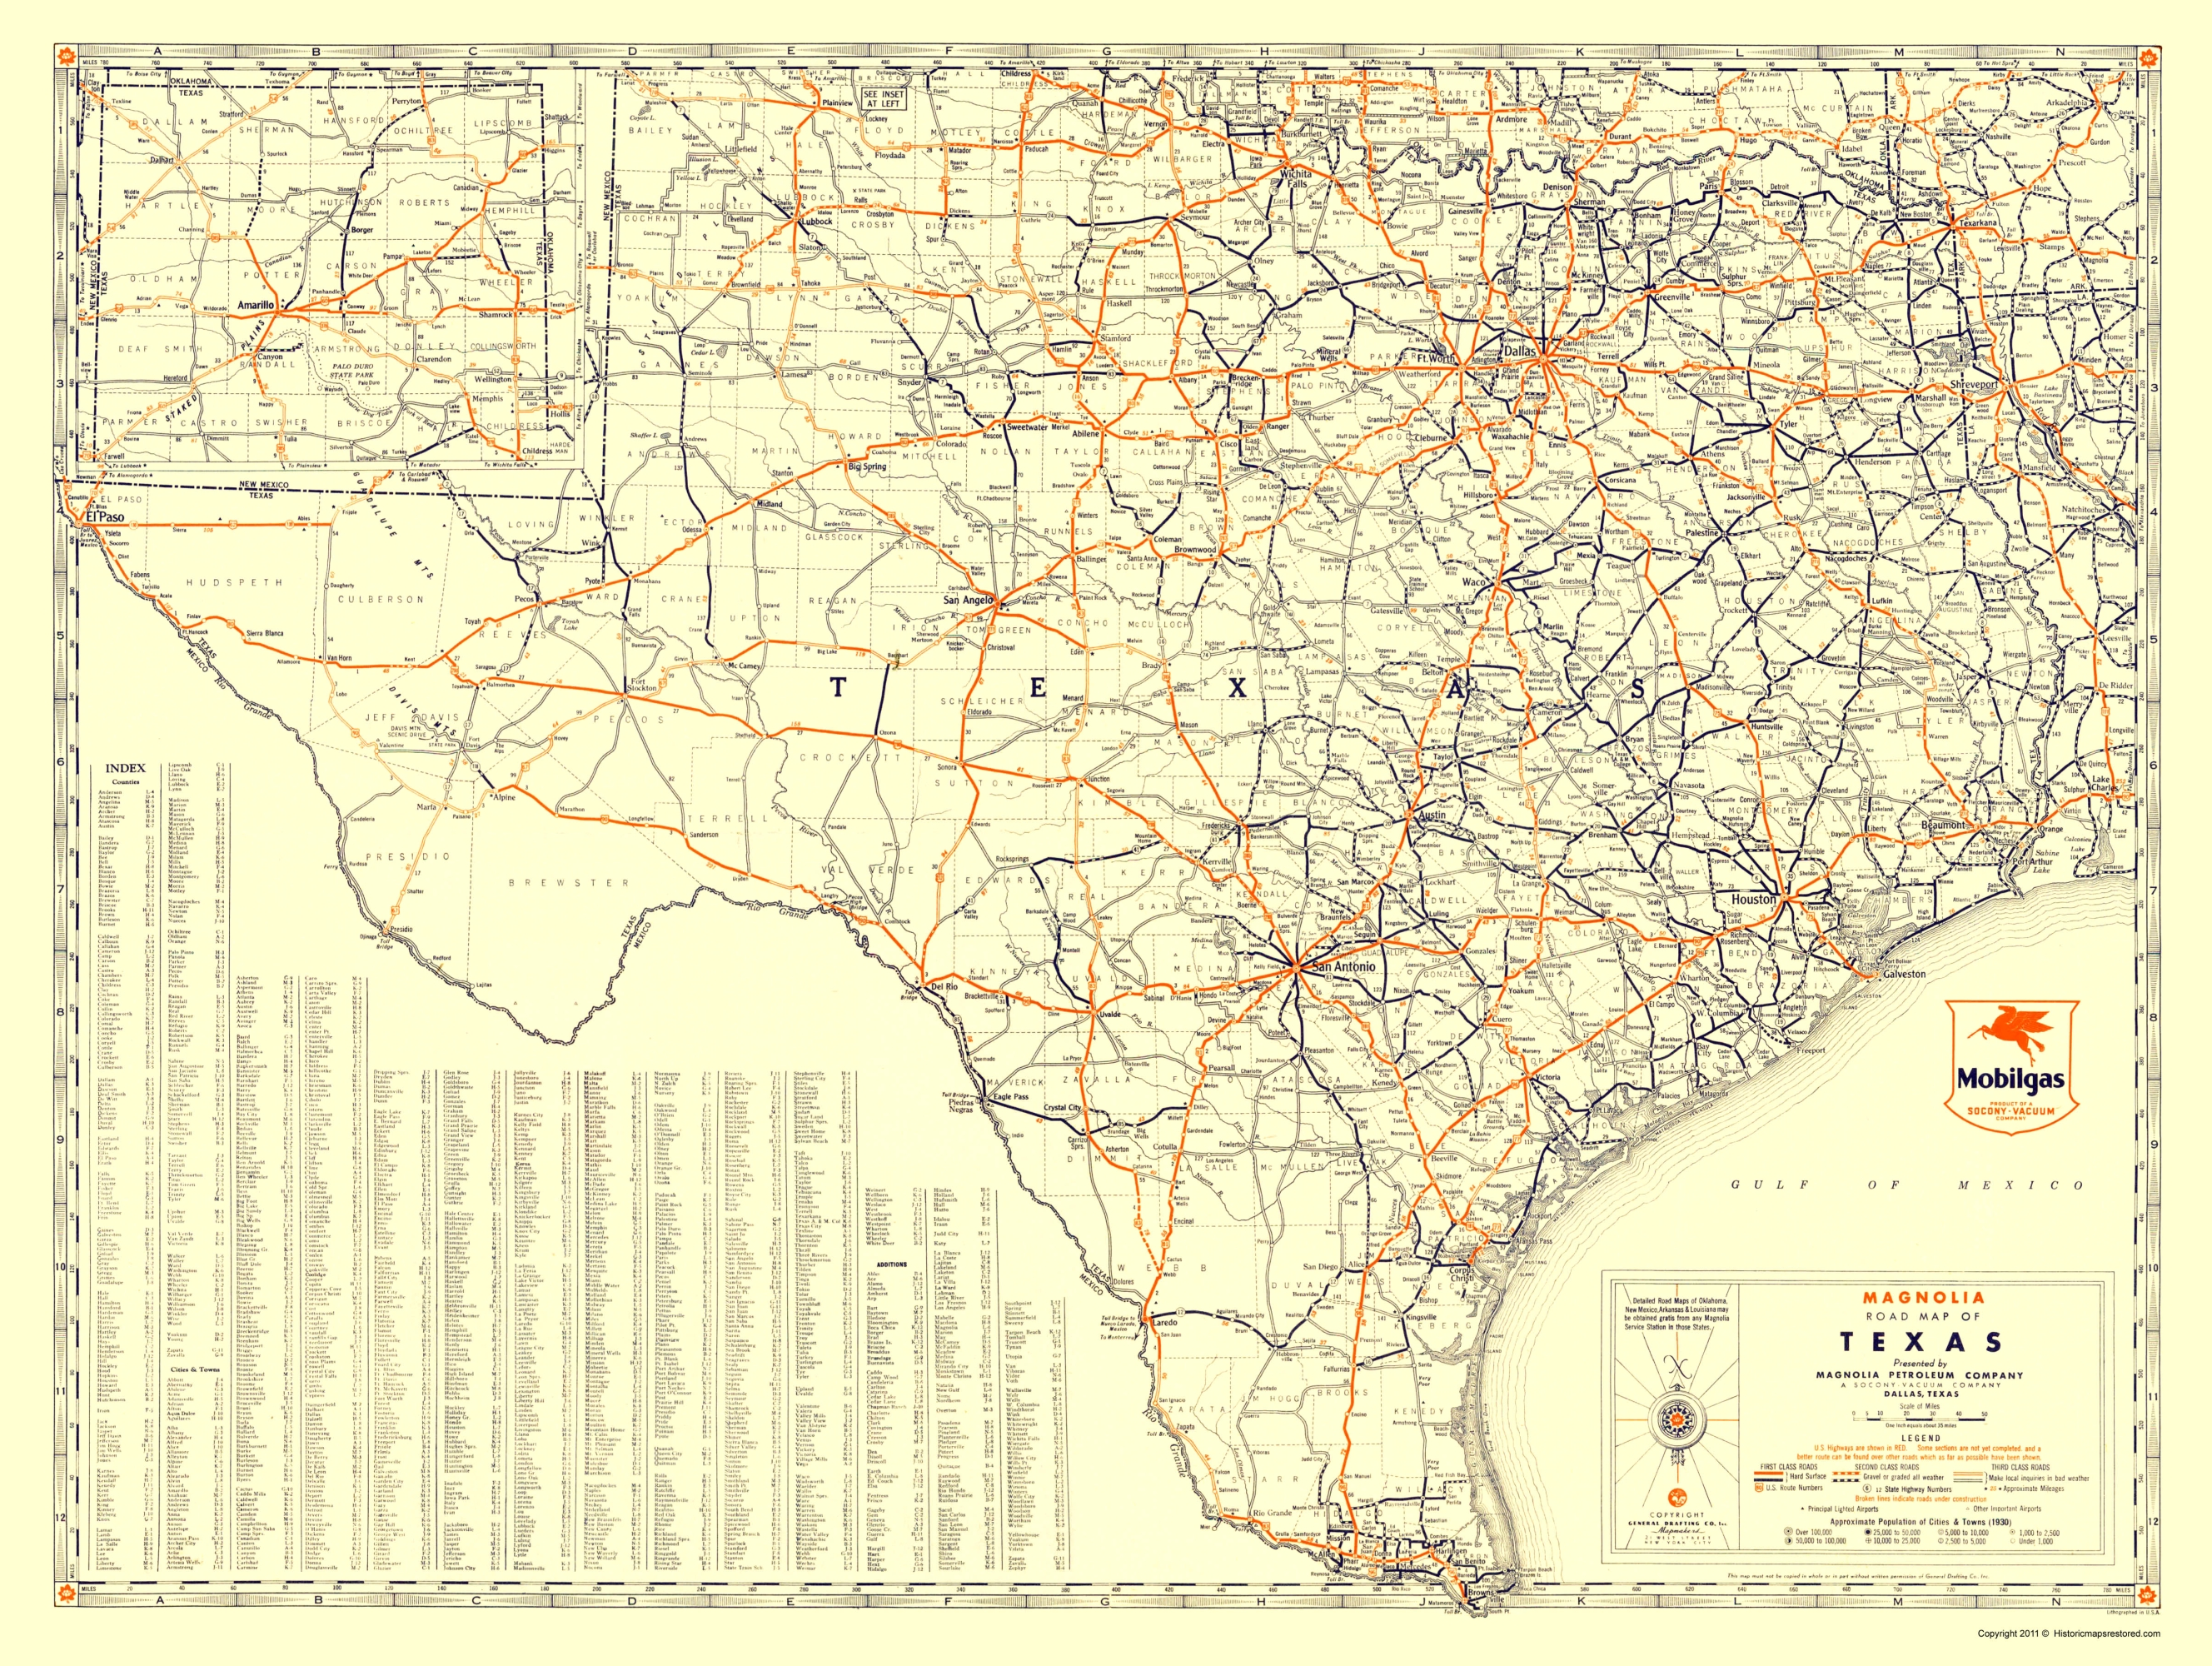 Road Map Of Texas State.Old Travel Map Texas Road Map From Magnolia Petro 1933